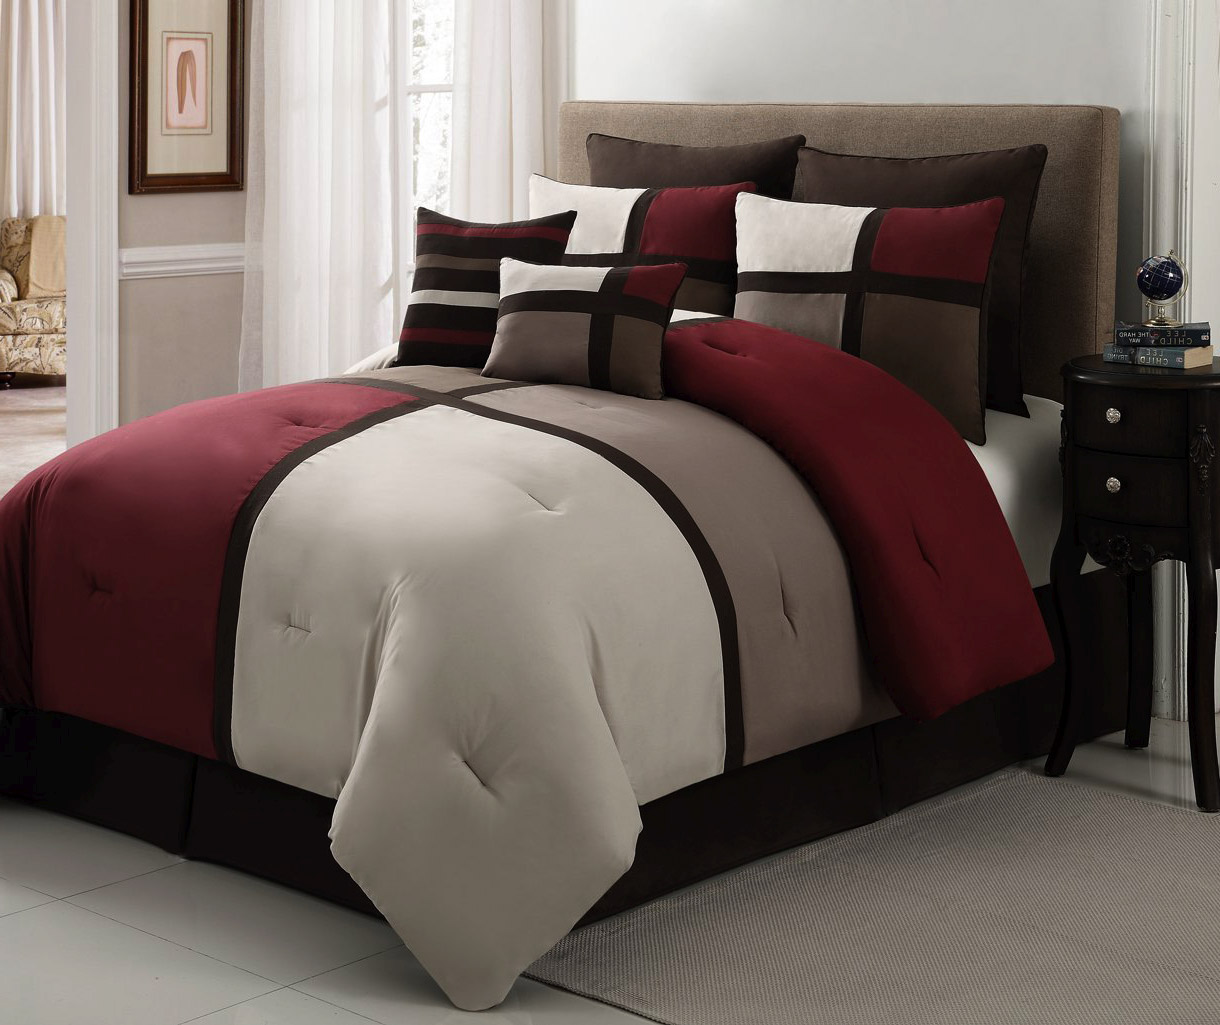 Have Perfect California King Bed Comforter Set in Your Room